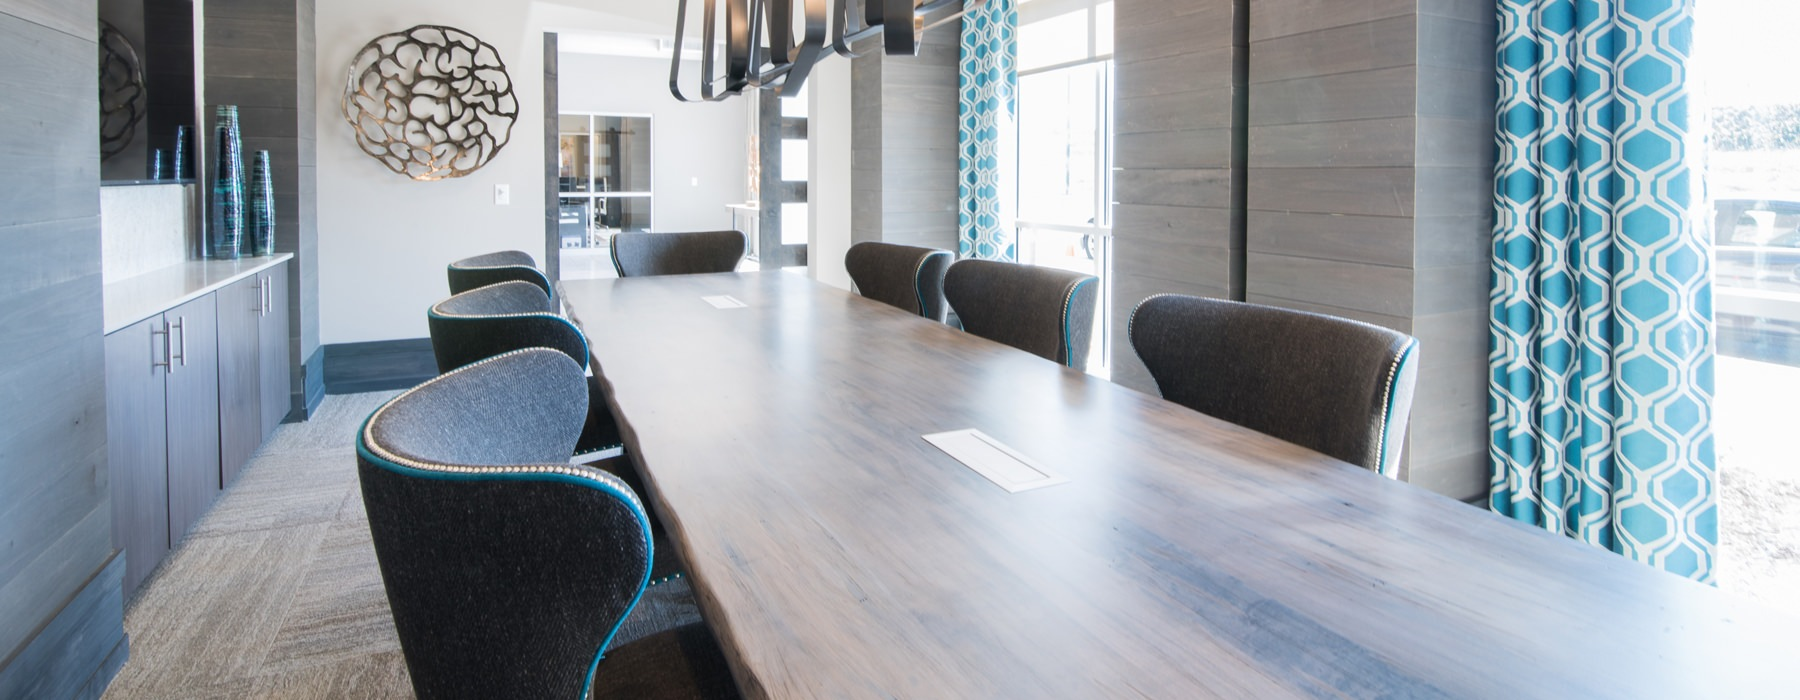 Large wooden conference table in modern styled room